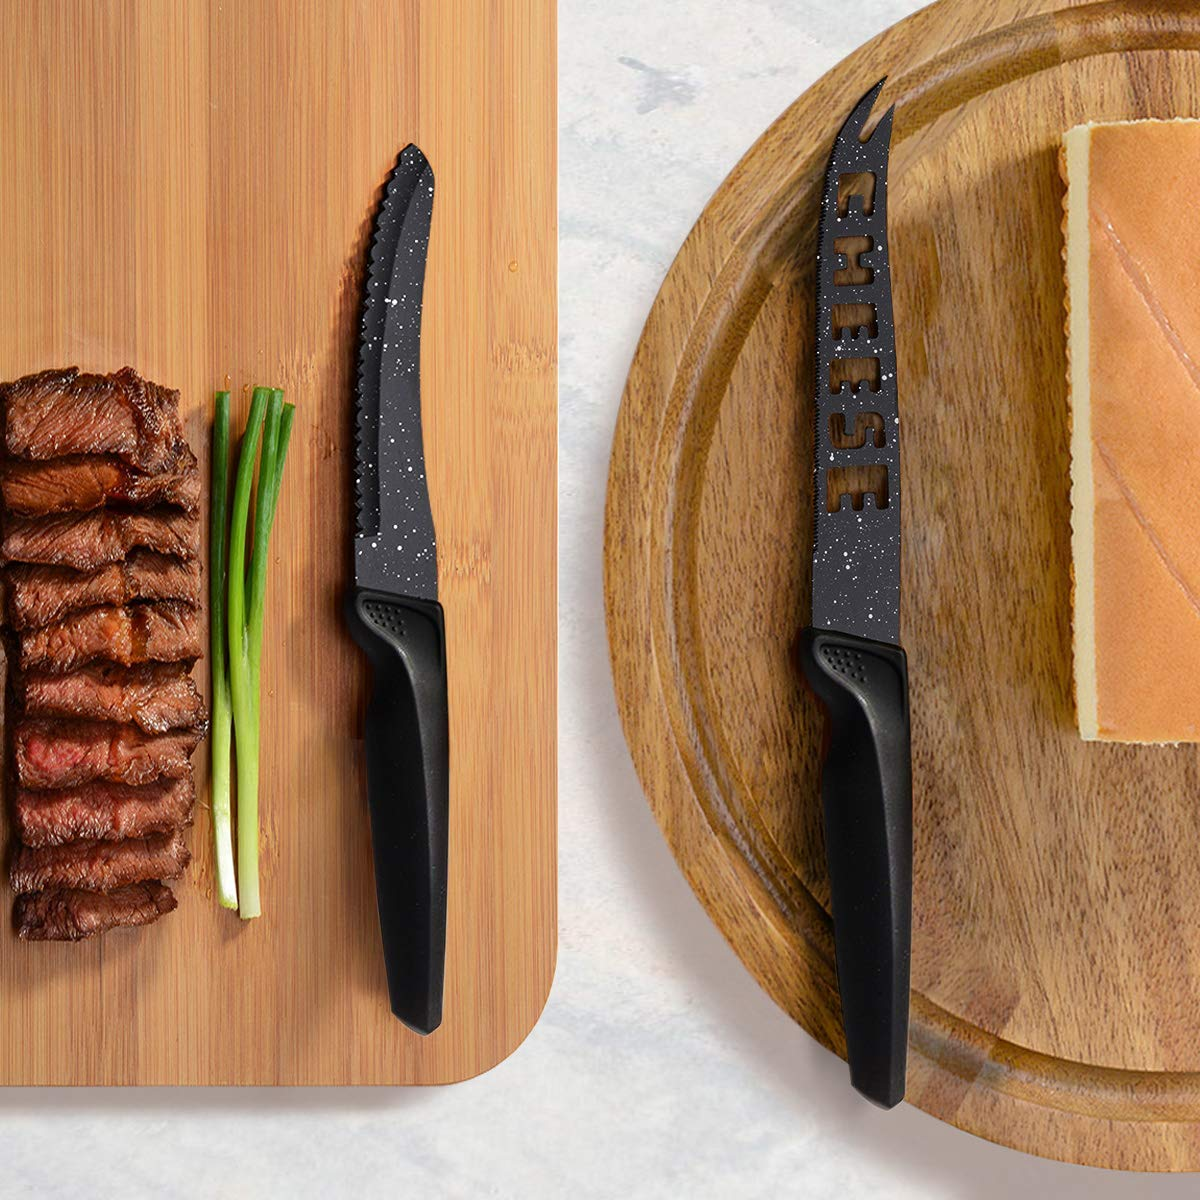 HOBO 17-Piece Knife Set, Stainless Steel Chef Knife Set with Acrylic Block Professional Non-Slip Handle, Kitchen Scissors, Cooking, Black Knife Sets by HOBO (Image #6)